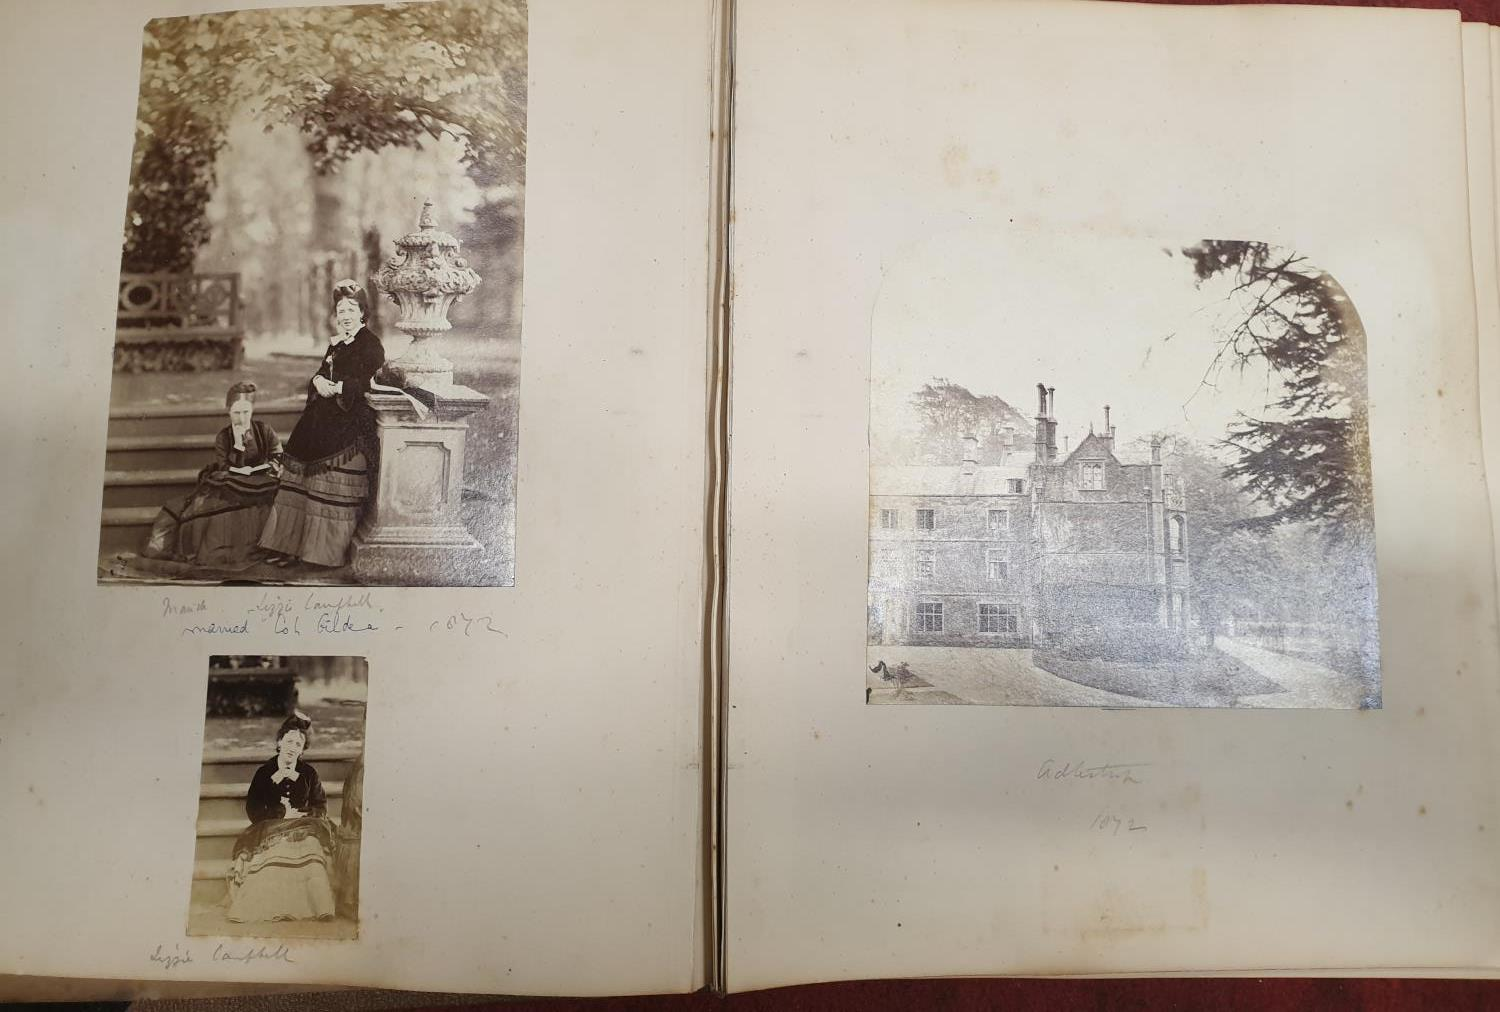 Lot 69B - A Book of old Photos dated 1872 along with another around the turn of the Century 1900 of